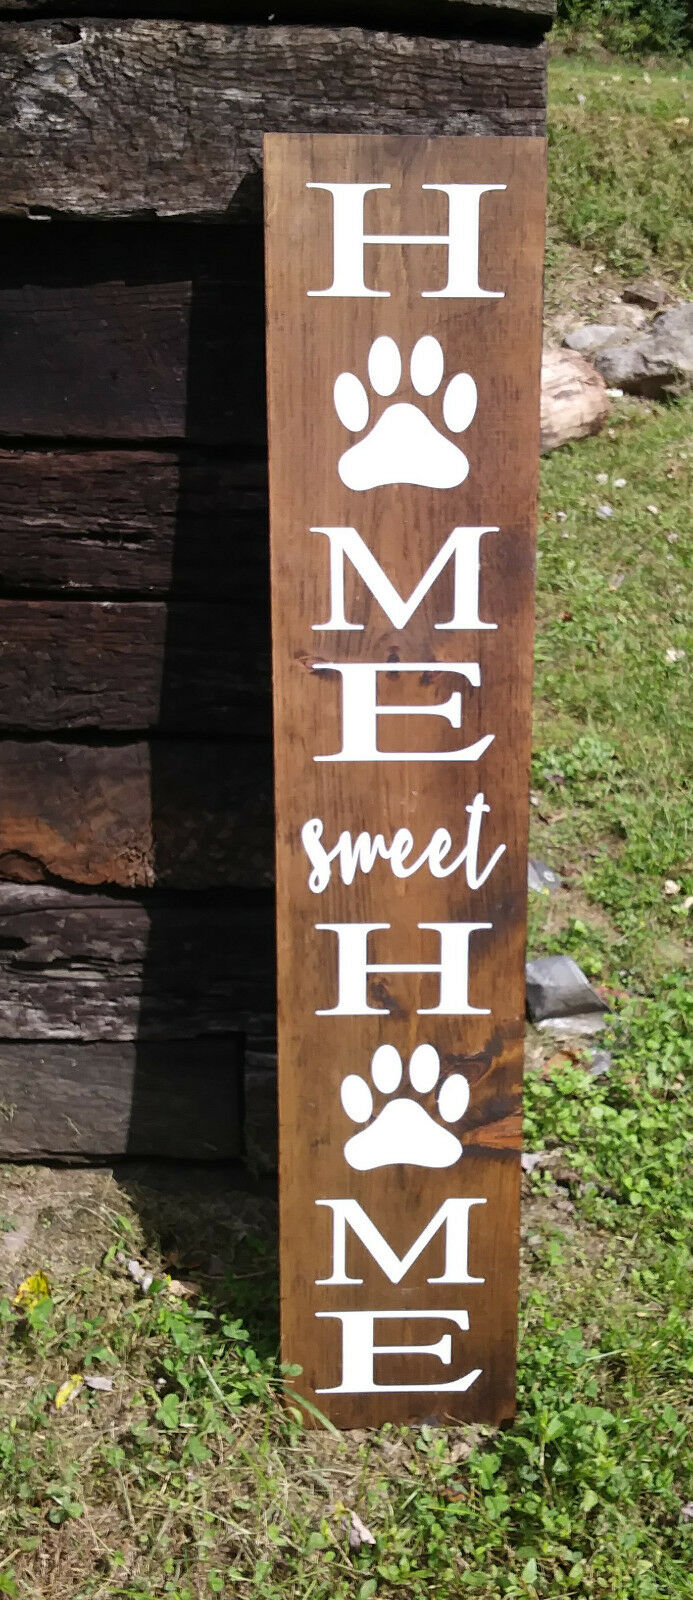 LARGE HOME SWEET HOME PAW WOOD SIGN Weiß Innen HOME DECOR WOOD GIFT 48 IN